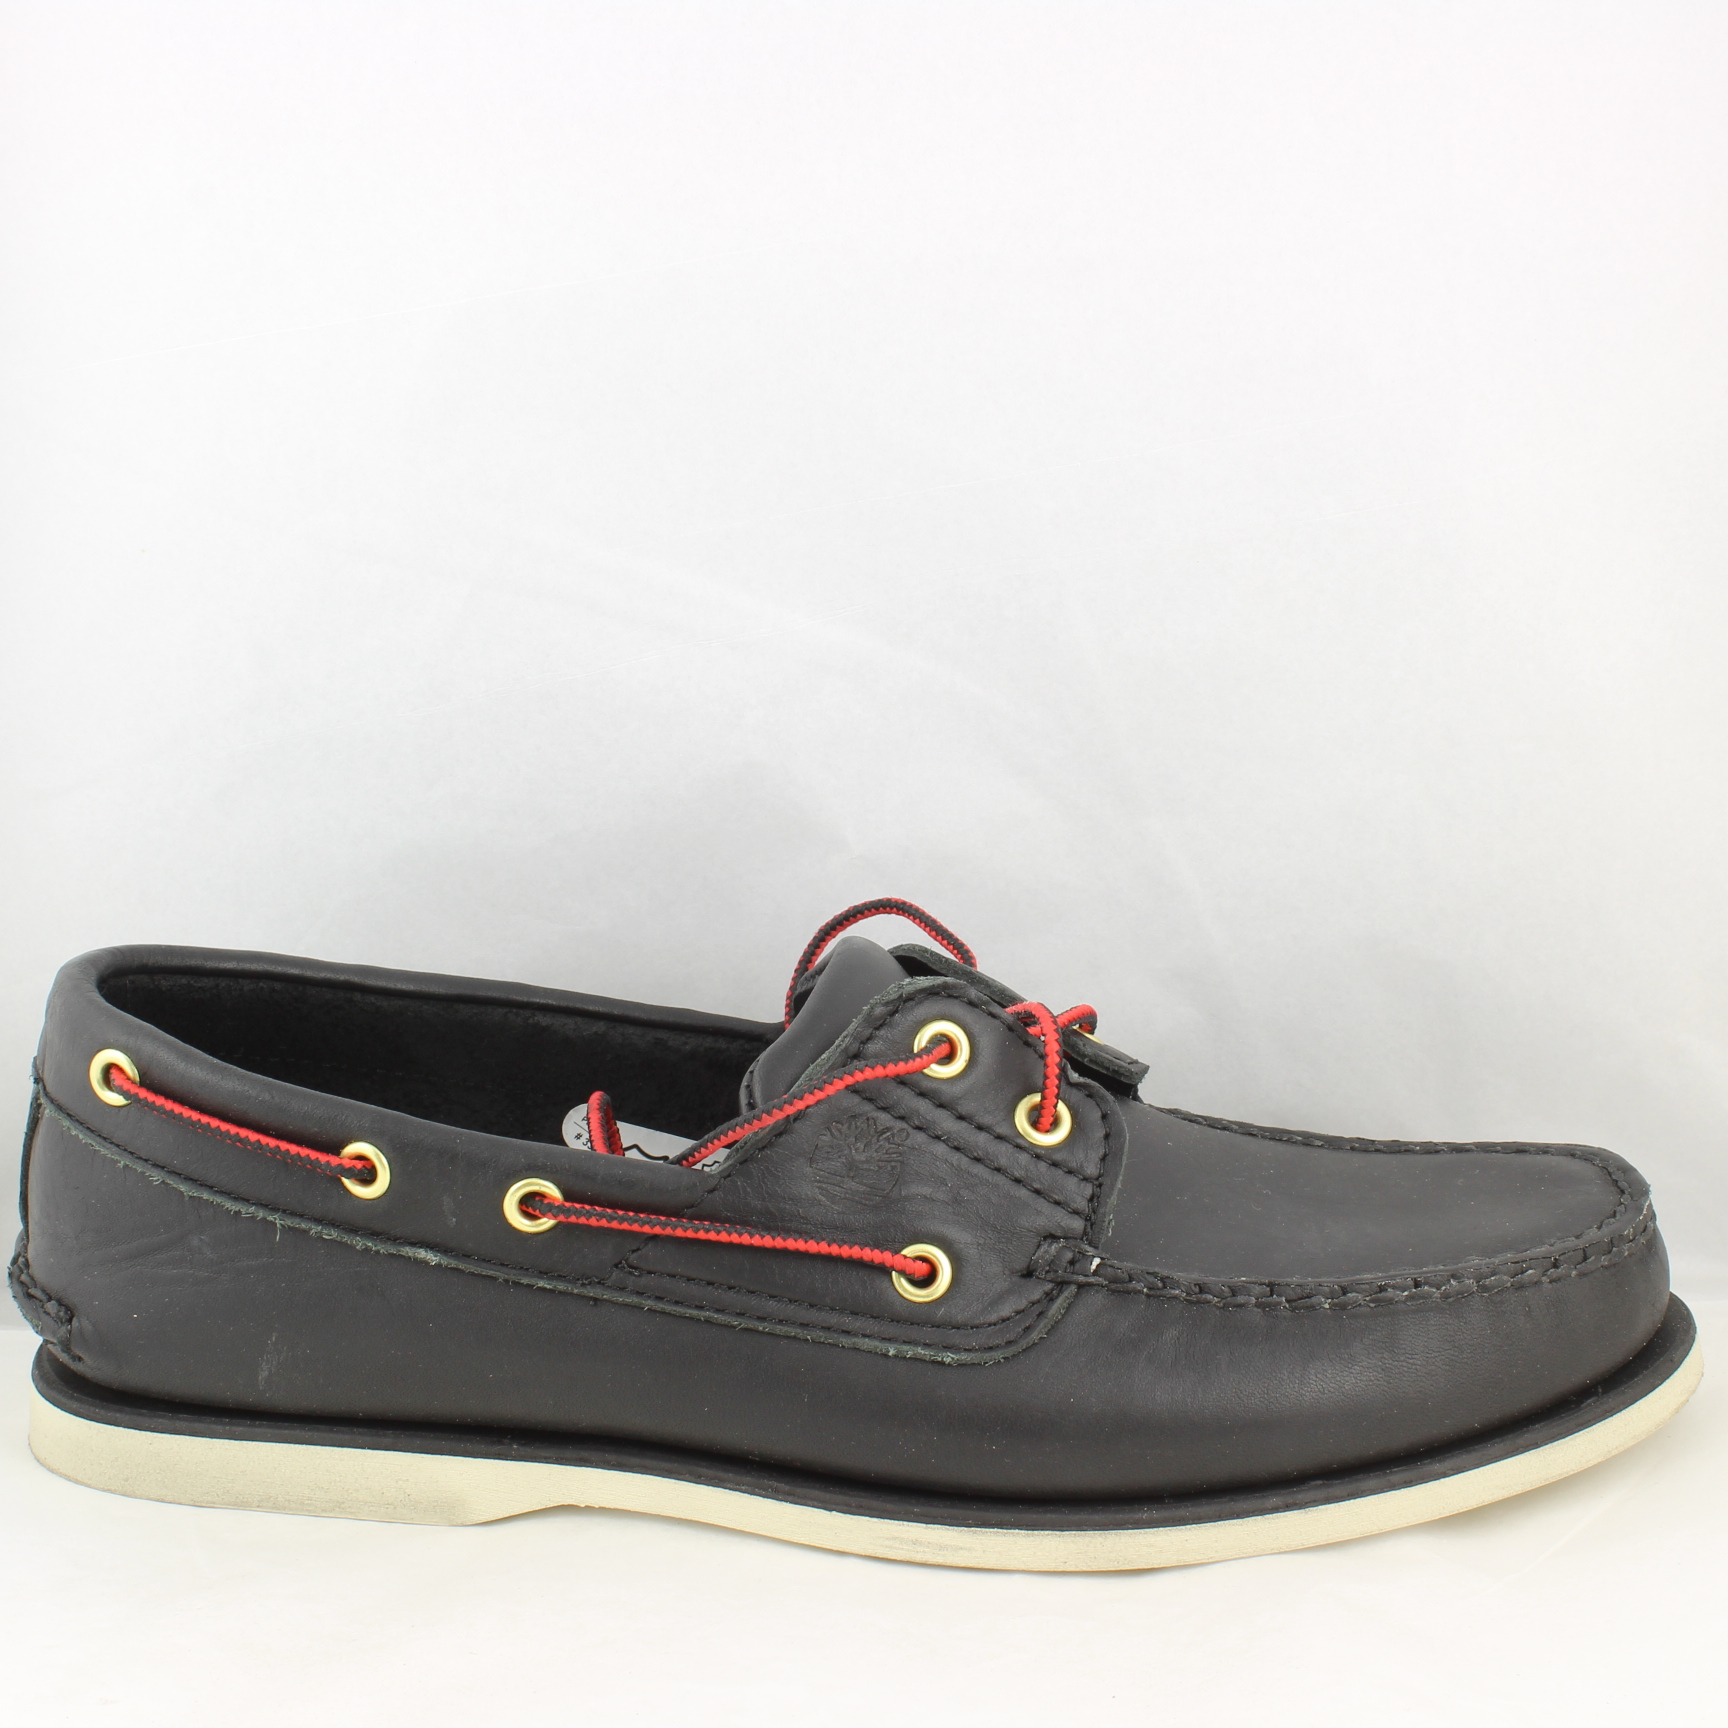 mens timberland black leather deck shoes uk size 10 ex